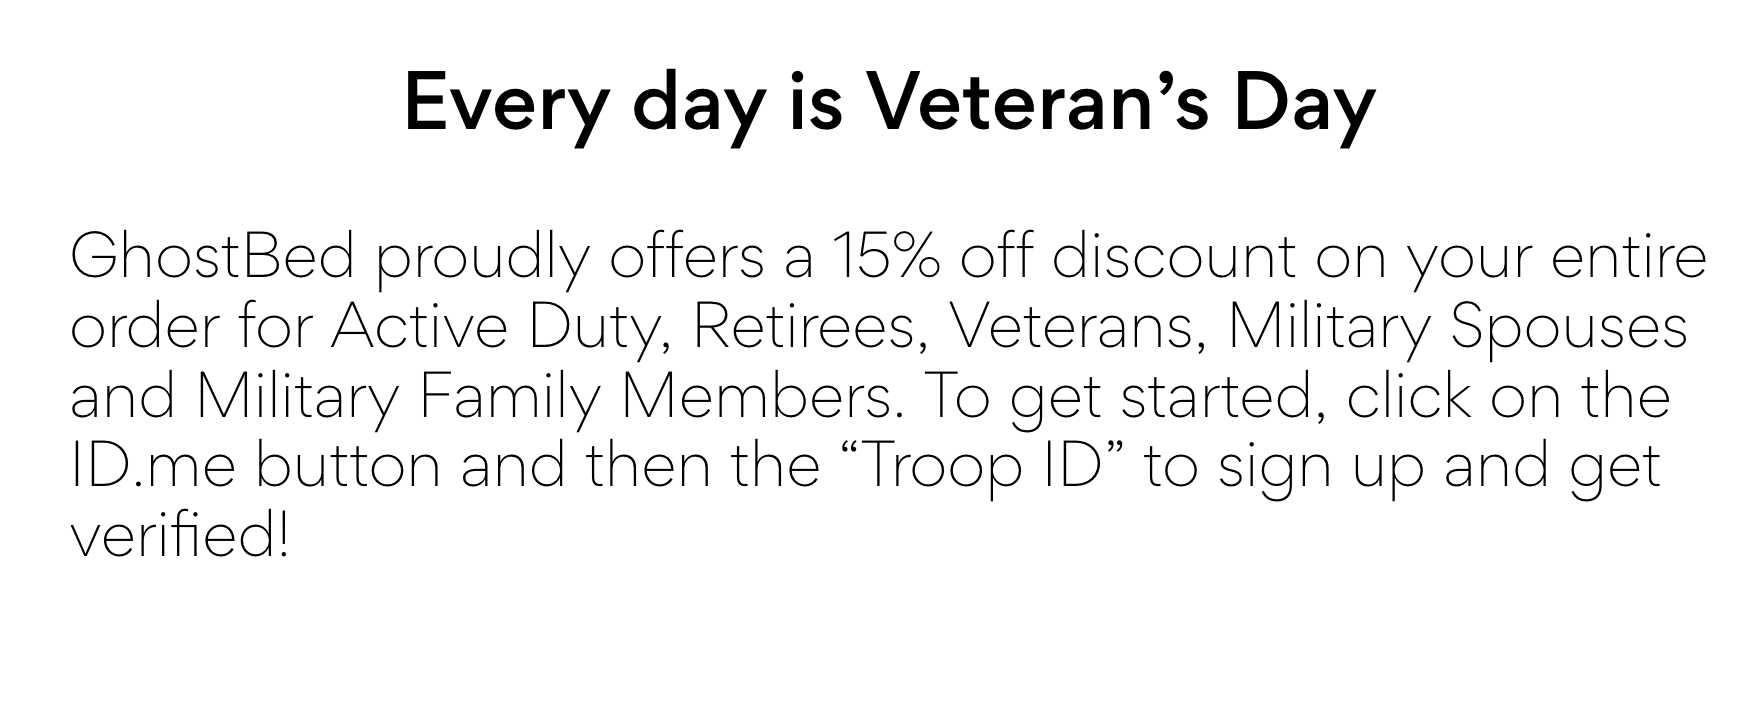 GhostBed Military Veteran Discounts